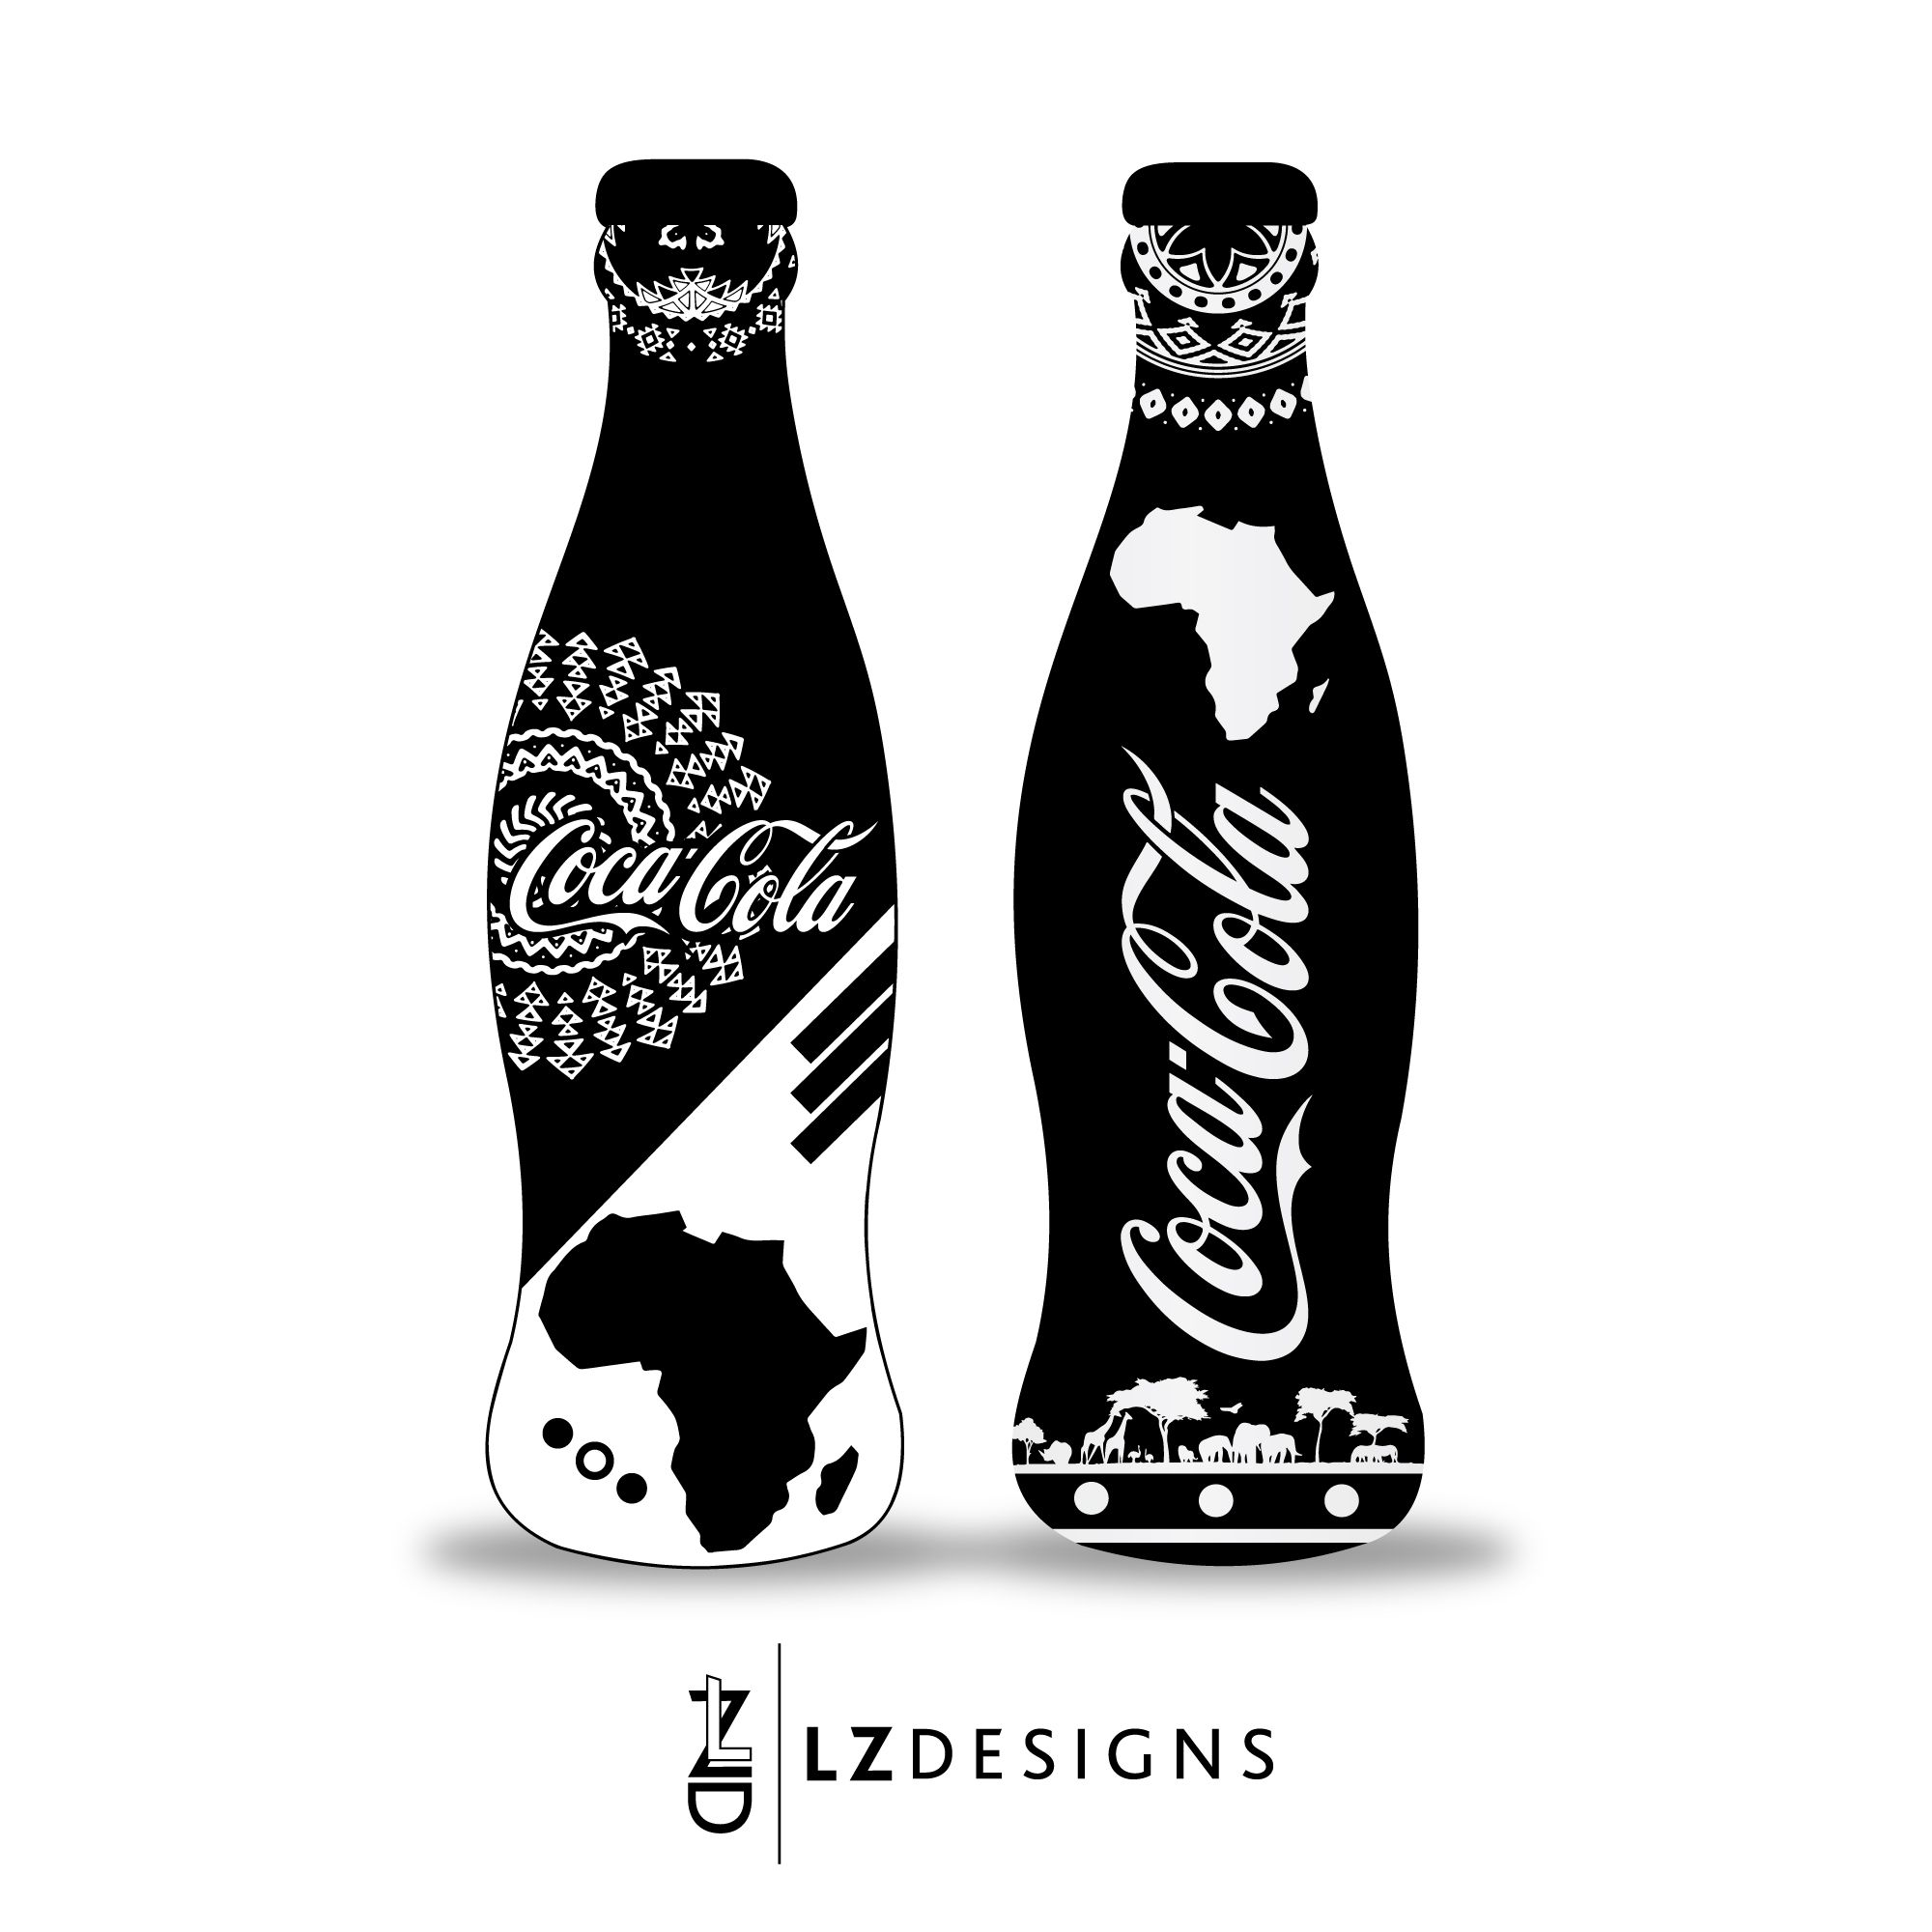 coca cola bottle i did as part of my creative life vectors pinterest